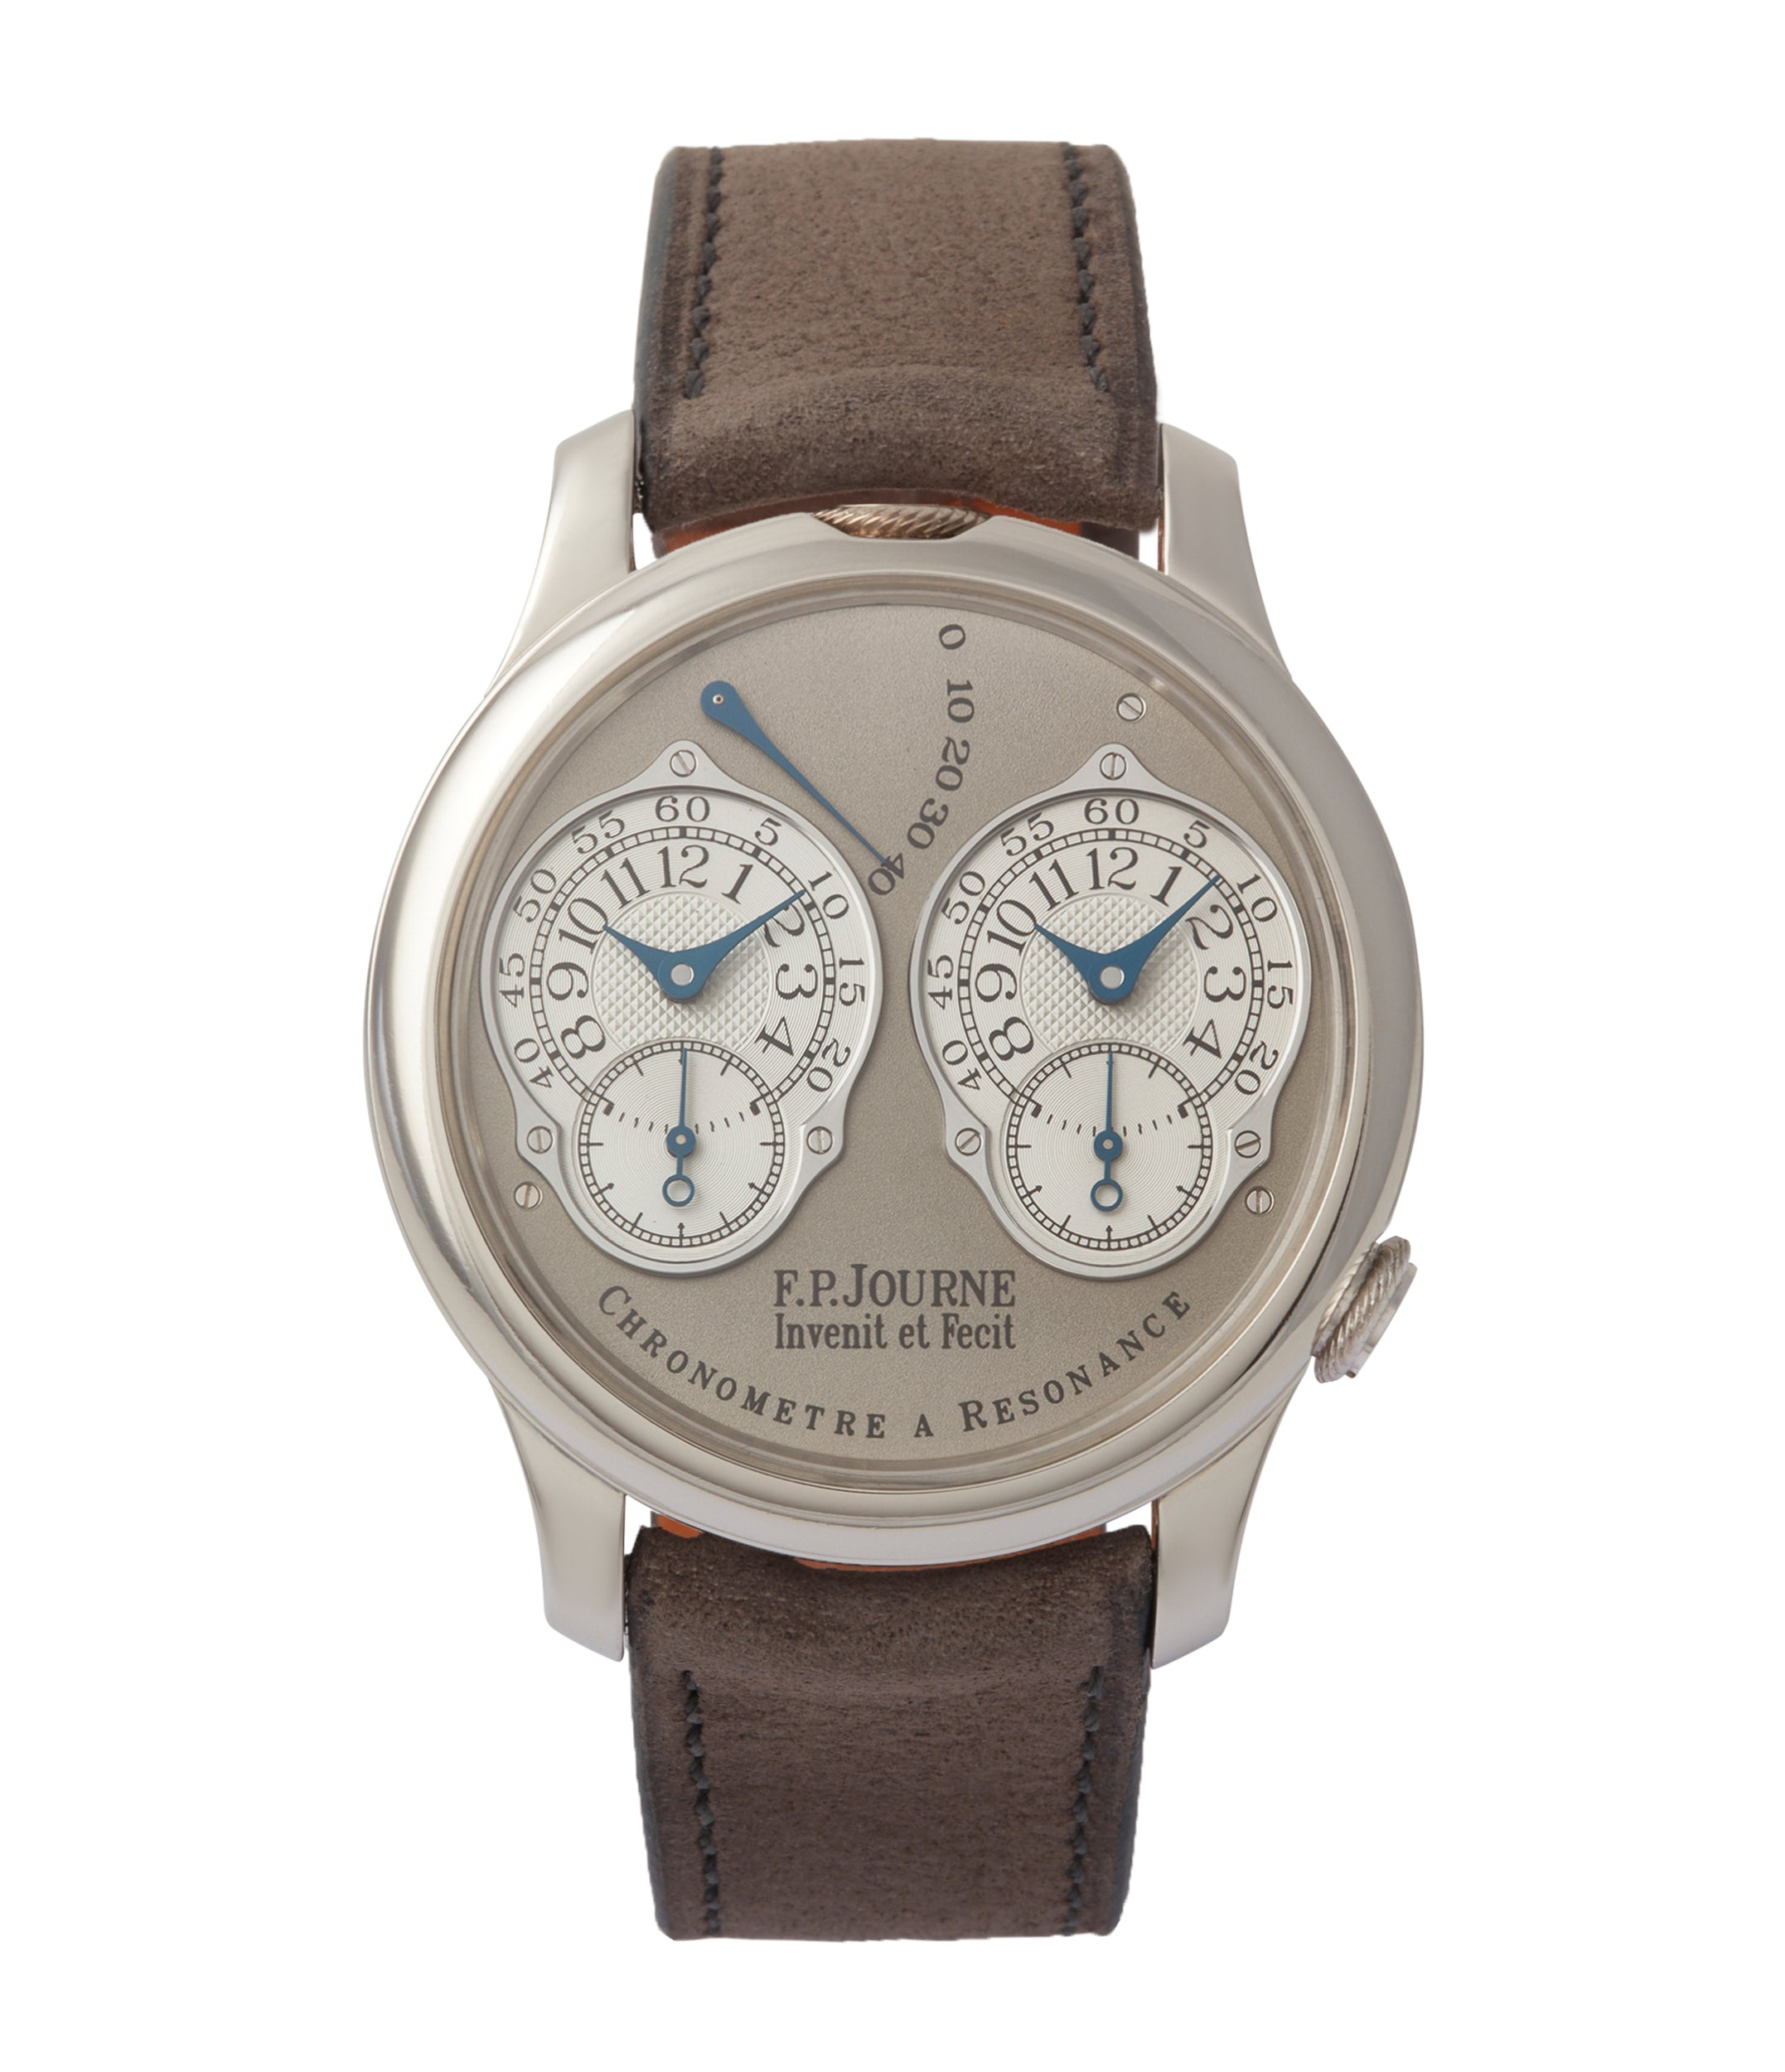 buy F. P. Journe Chronometre a Resonance Second Series RN gold movement platinum watch for sale online at A Collected Man London UK specialist of independent watchmakers